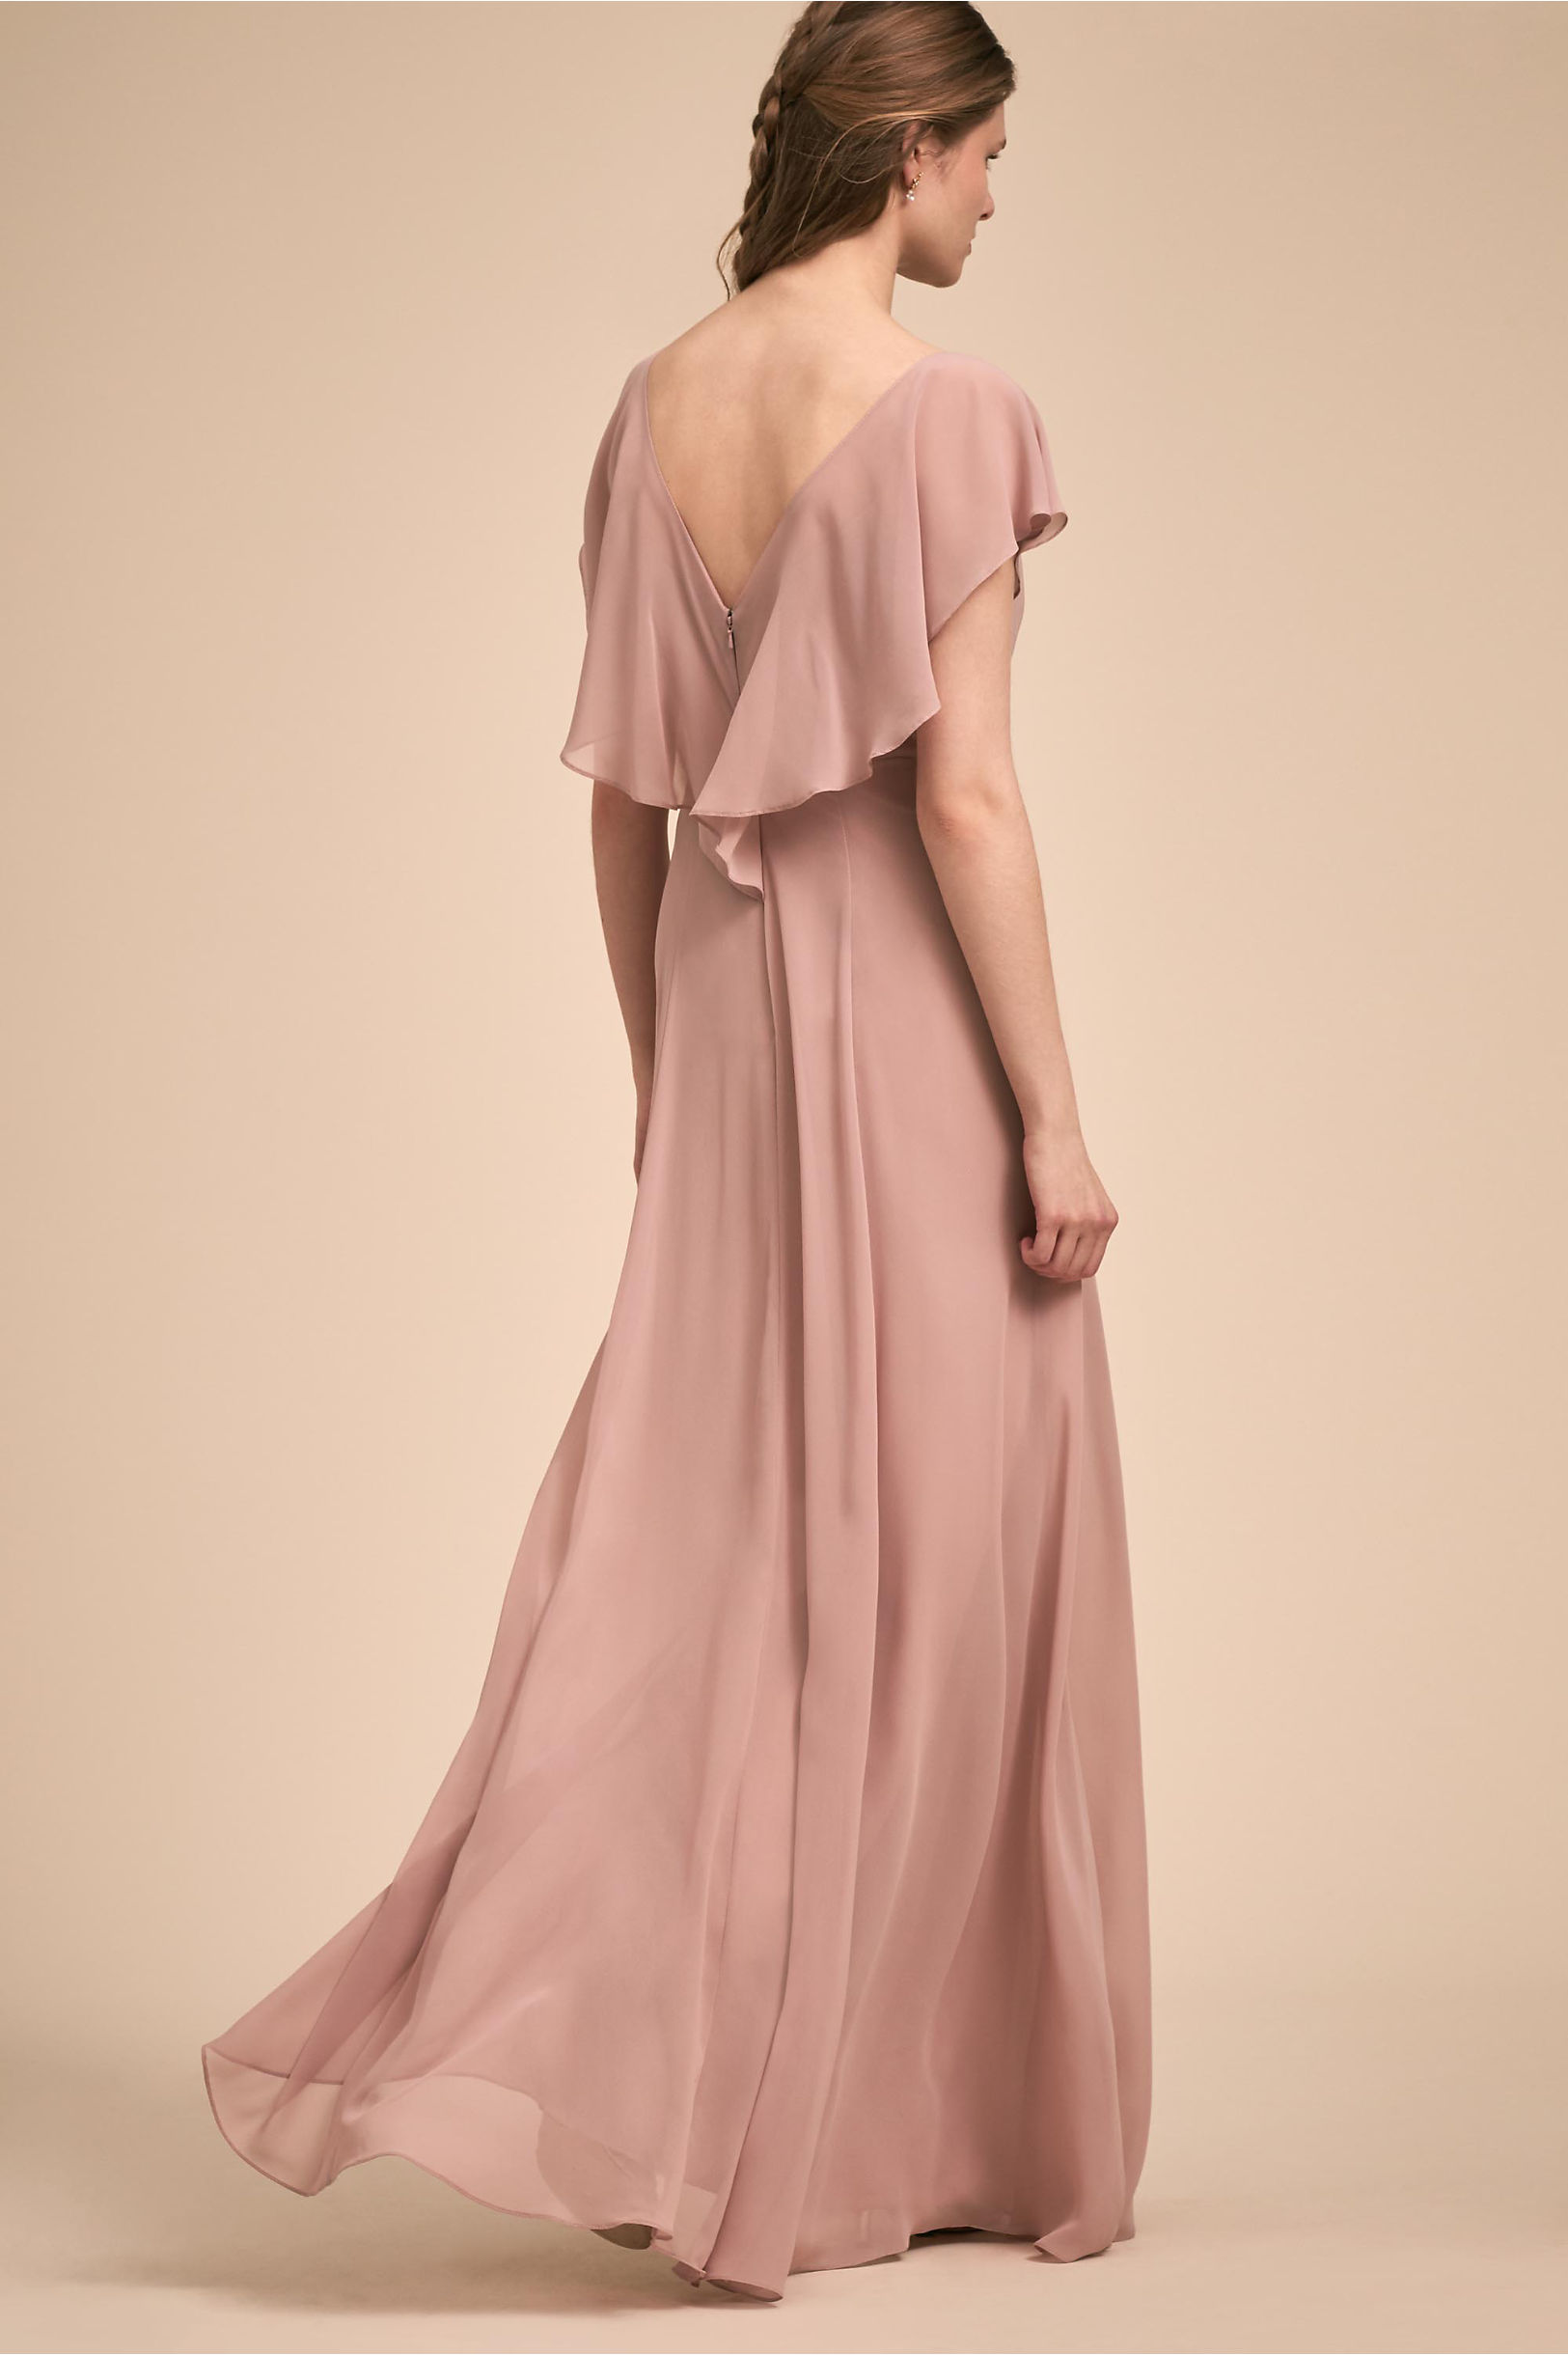 Paisley Dress Whipped Apricot in Sale   BHLDN